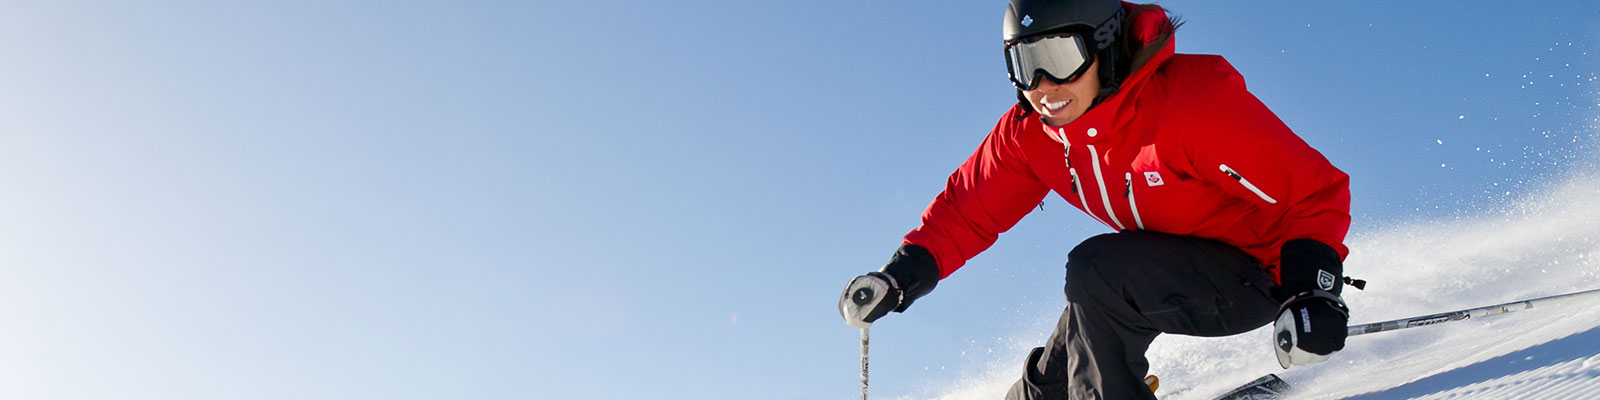 Low cost ski holidays to Bansko & Borovets, Bulgaria